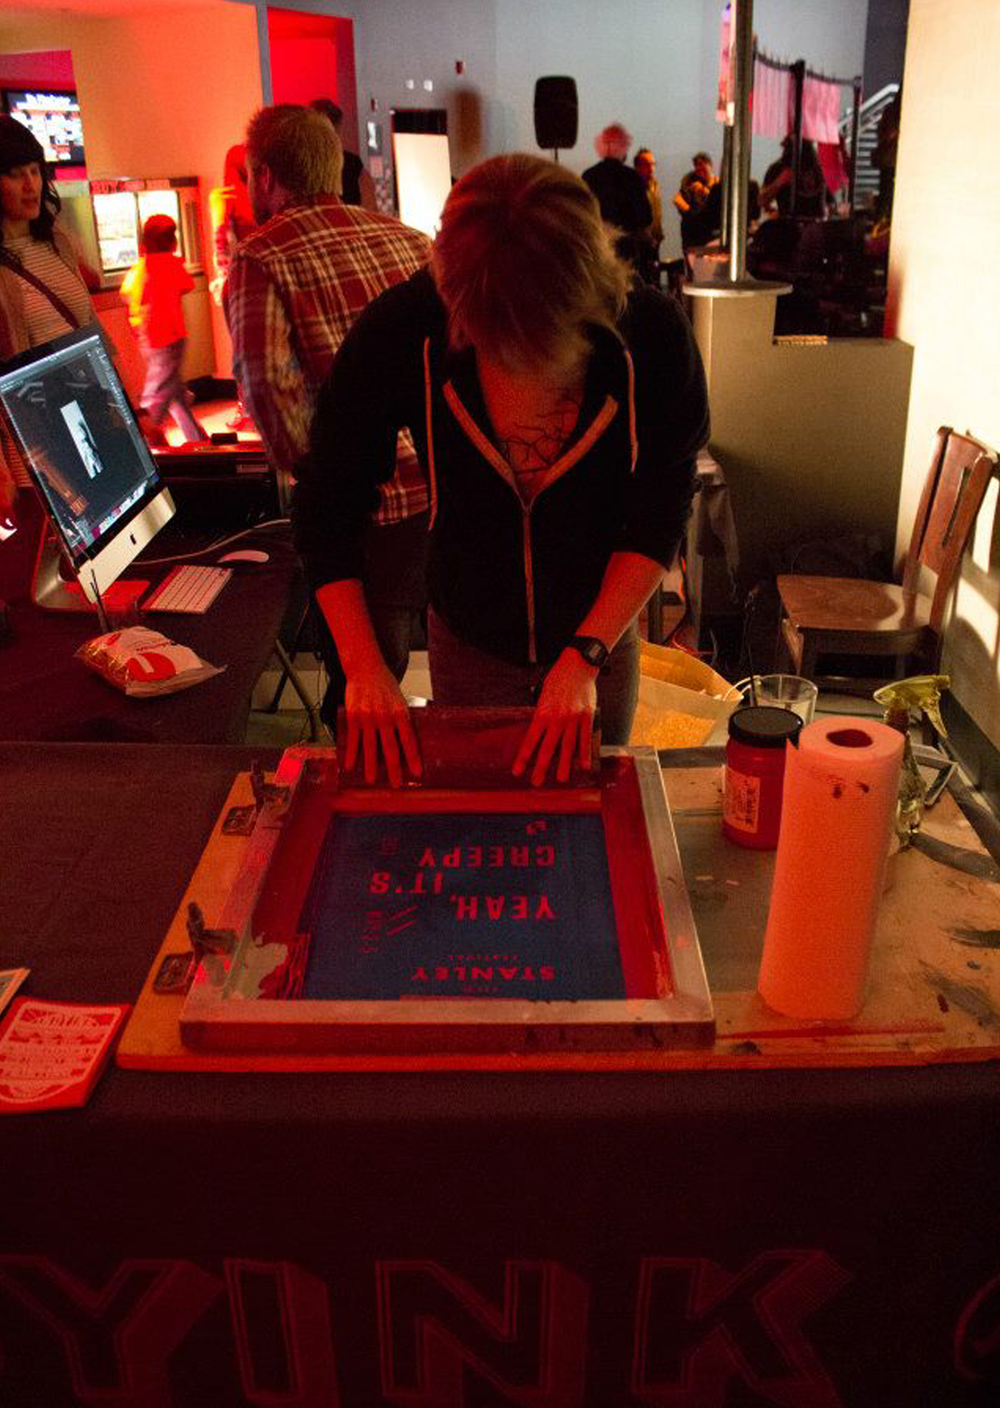 A woman screen prints onto a photograph at the Stanley Film Festival kick-off event.